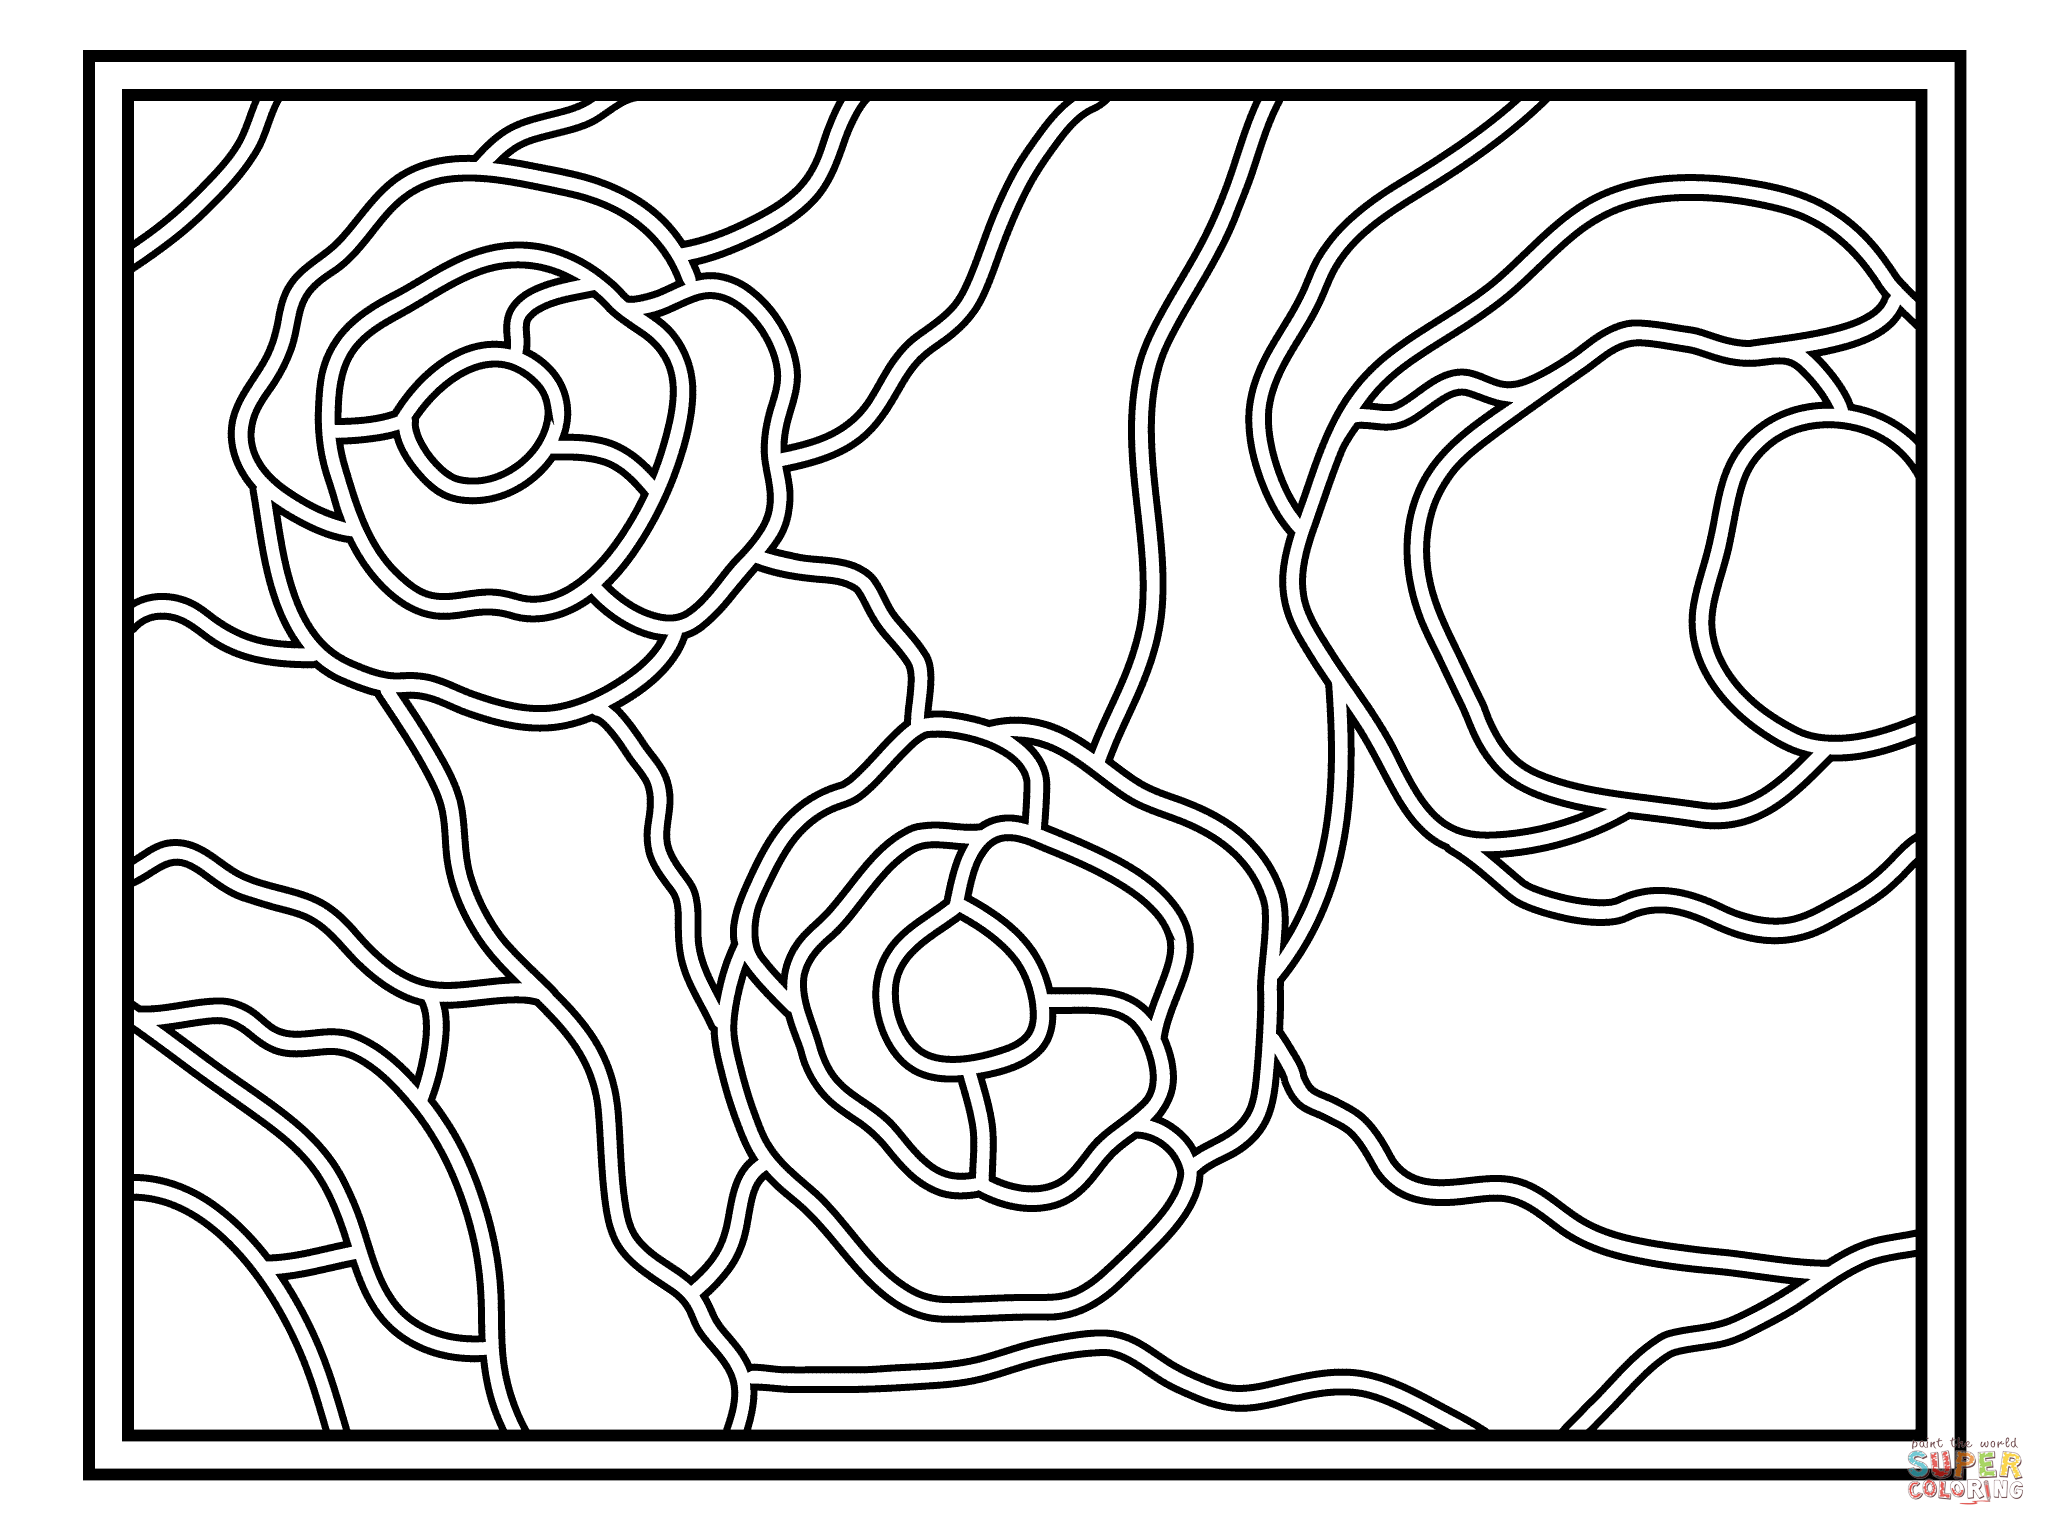 simple stained glass coloring pages - photo#36